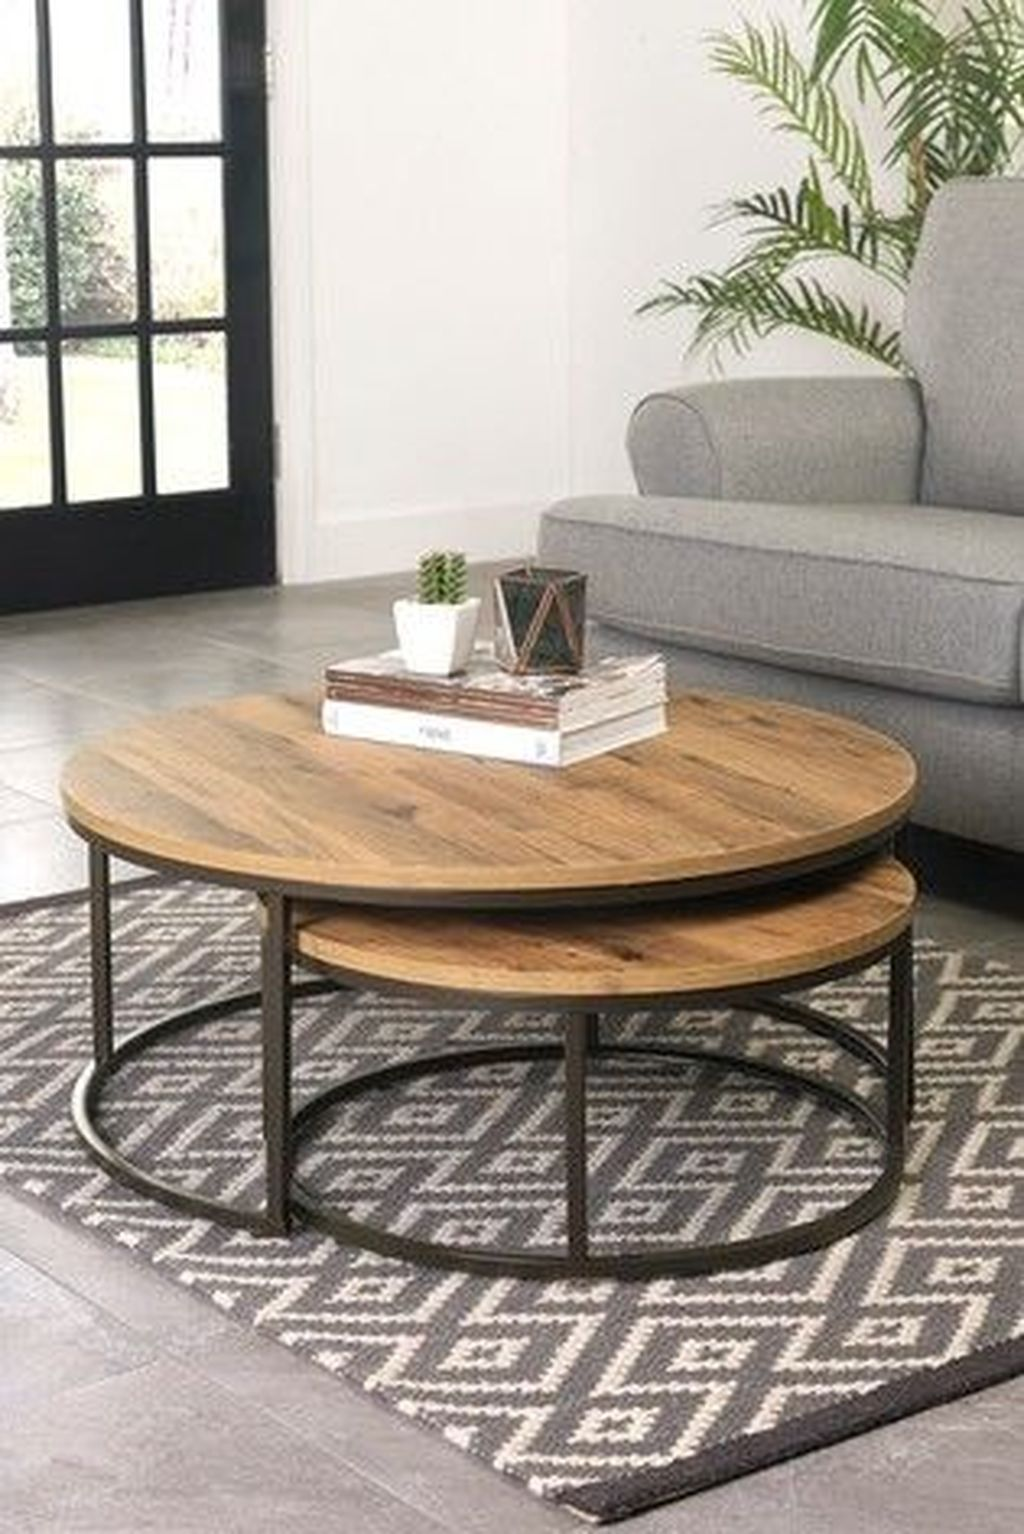 Cool Coffee Table Design Ideas Coffee Table Design Above Is An Extremely Praiseworthy As Well Modern Coffee Table Decor Coffee Table Living Room Coffee Table